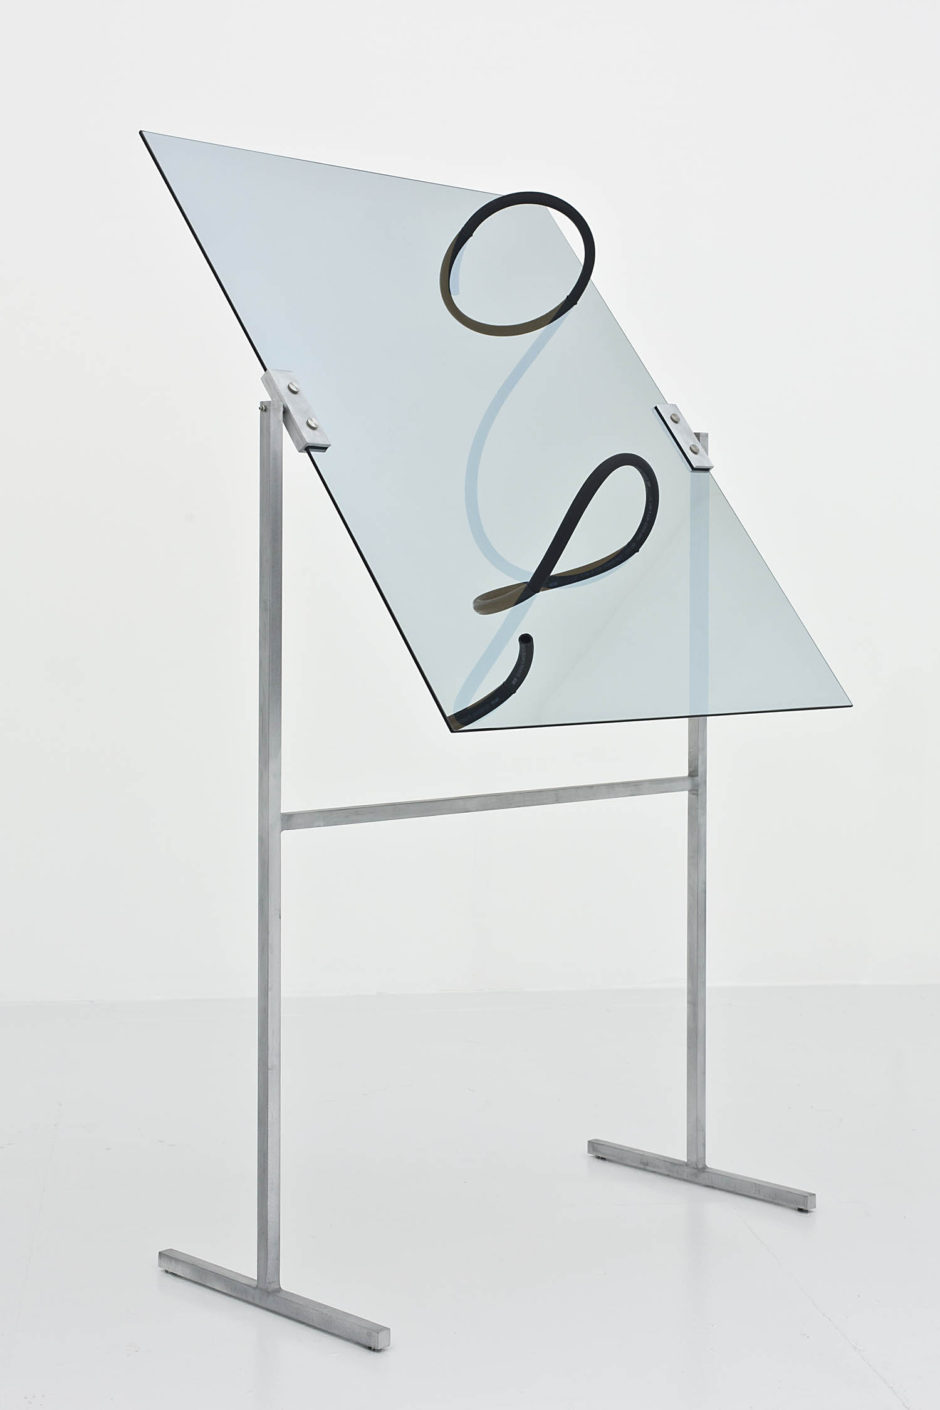 """Censor No.2"", 2015, hose, one way mirror, aluminum armature, 79 x 41.5 x 24 inches, 200.7 x 105.4 x 61 cm"